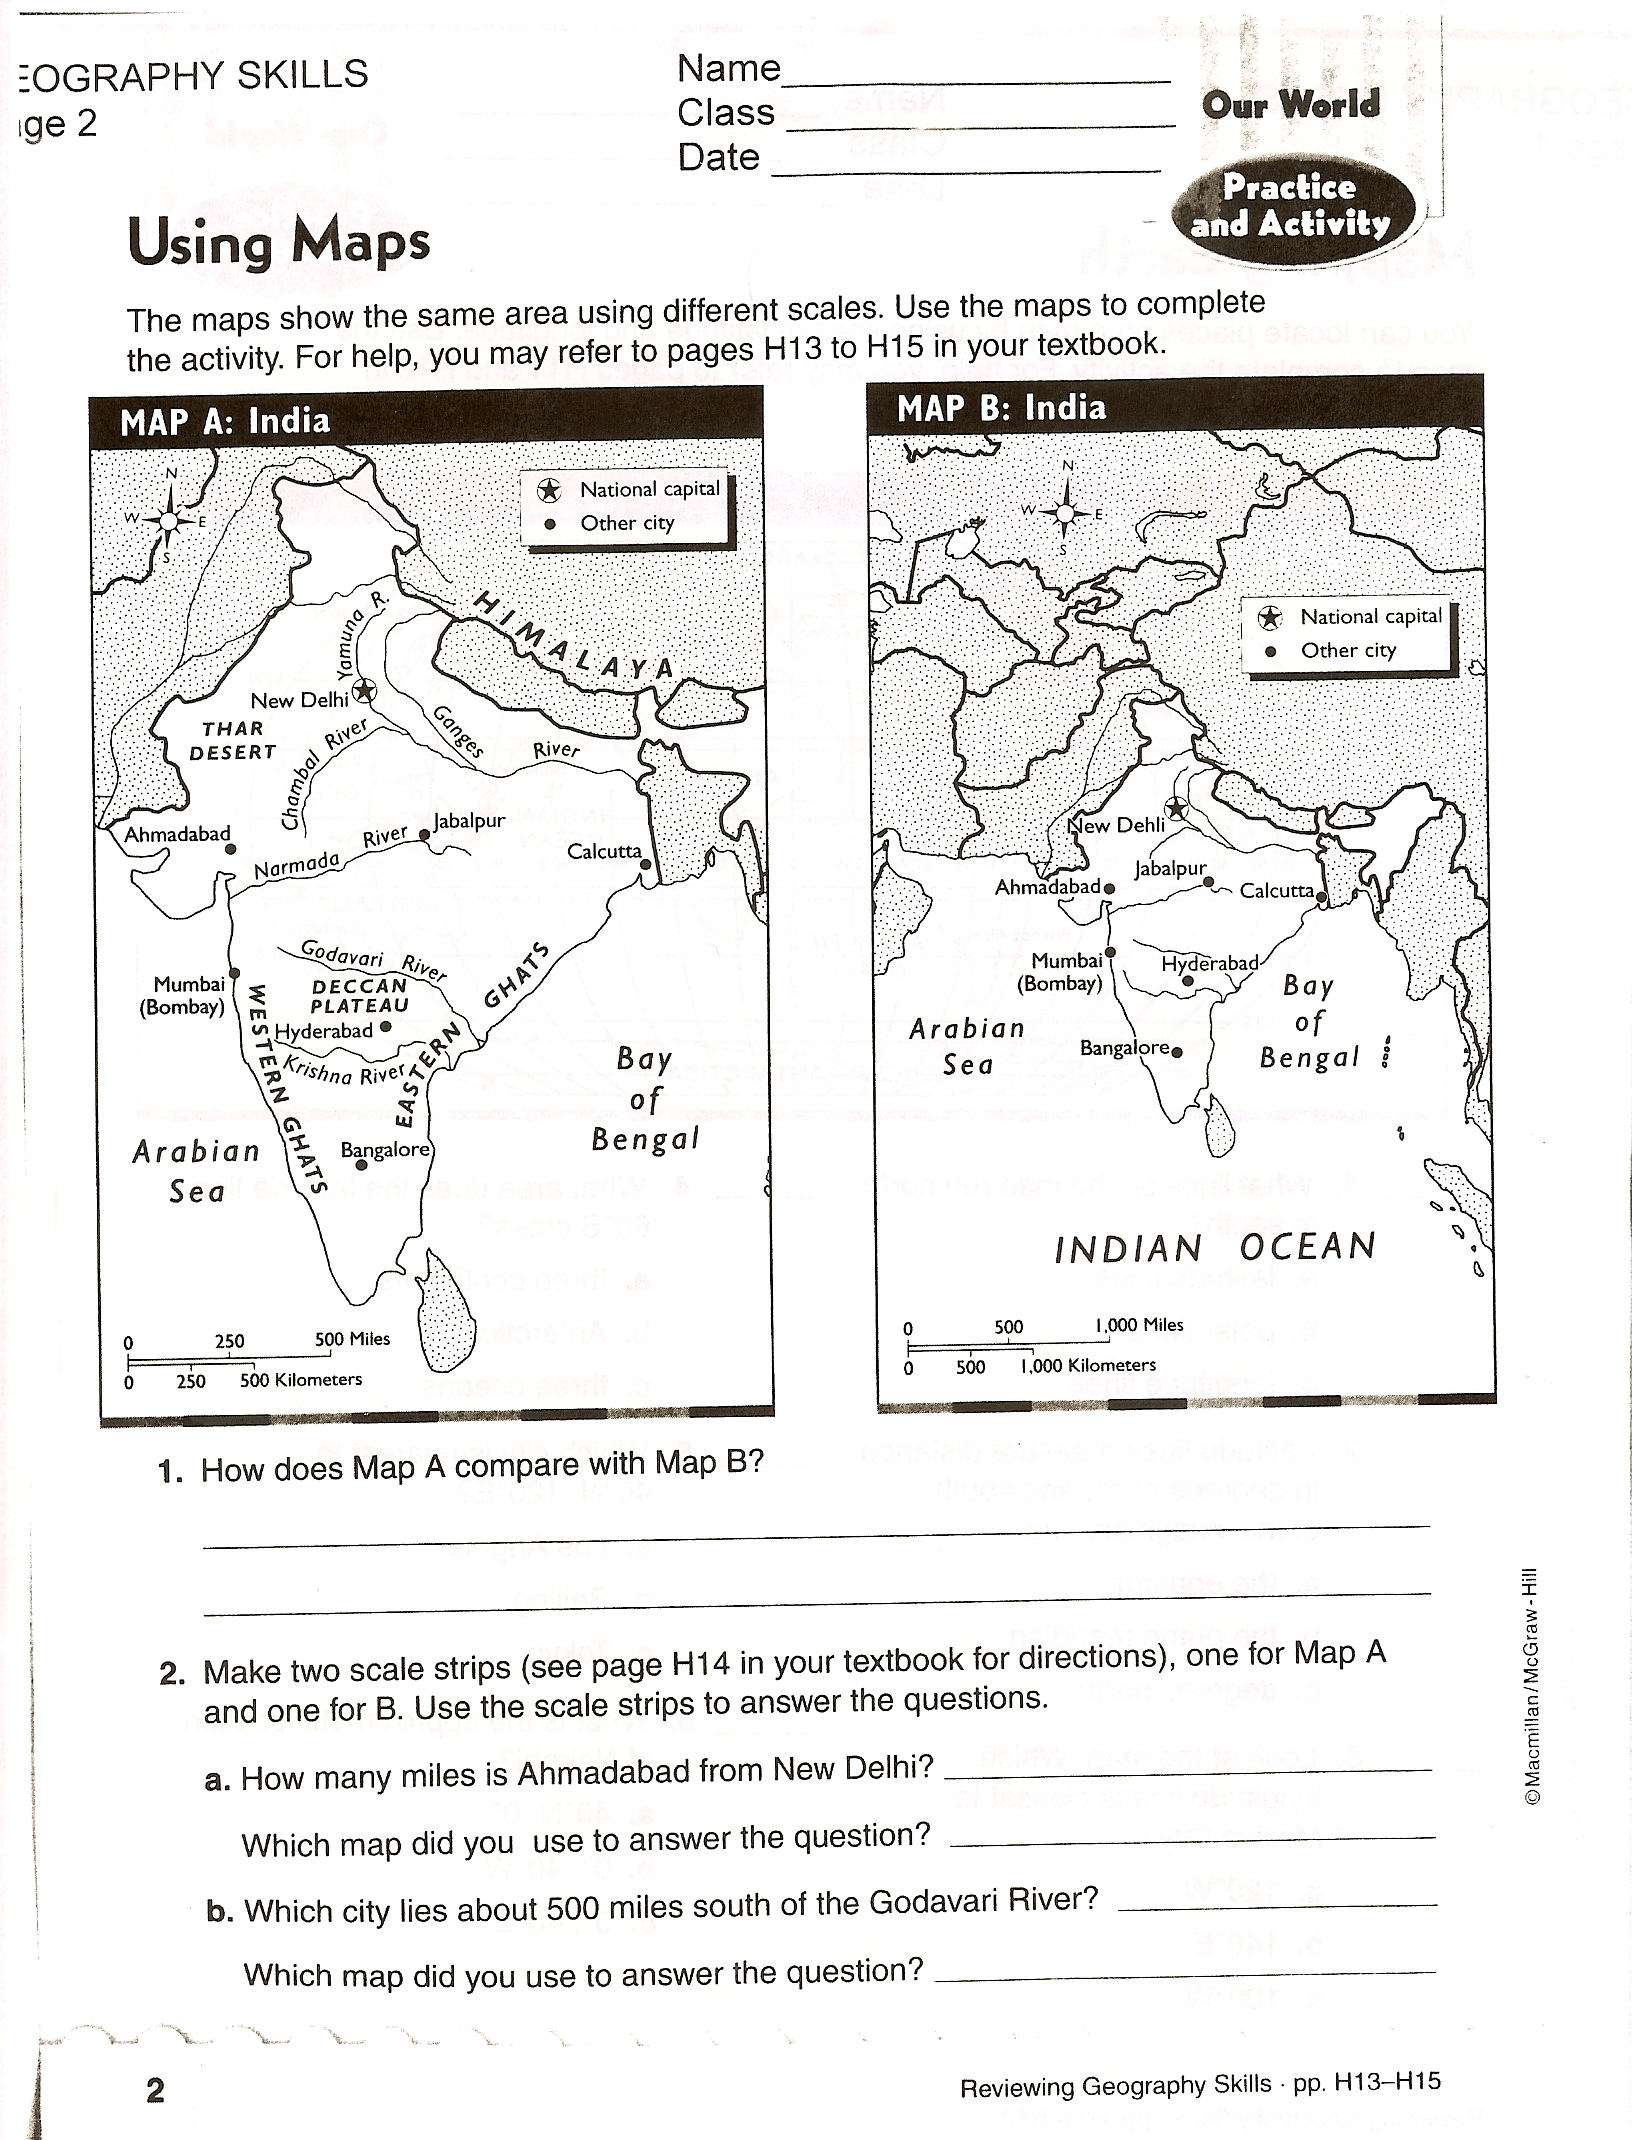 Practicing Map Skills Worksheet